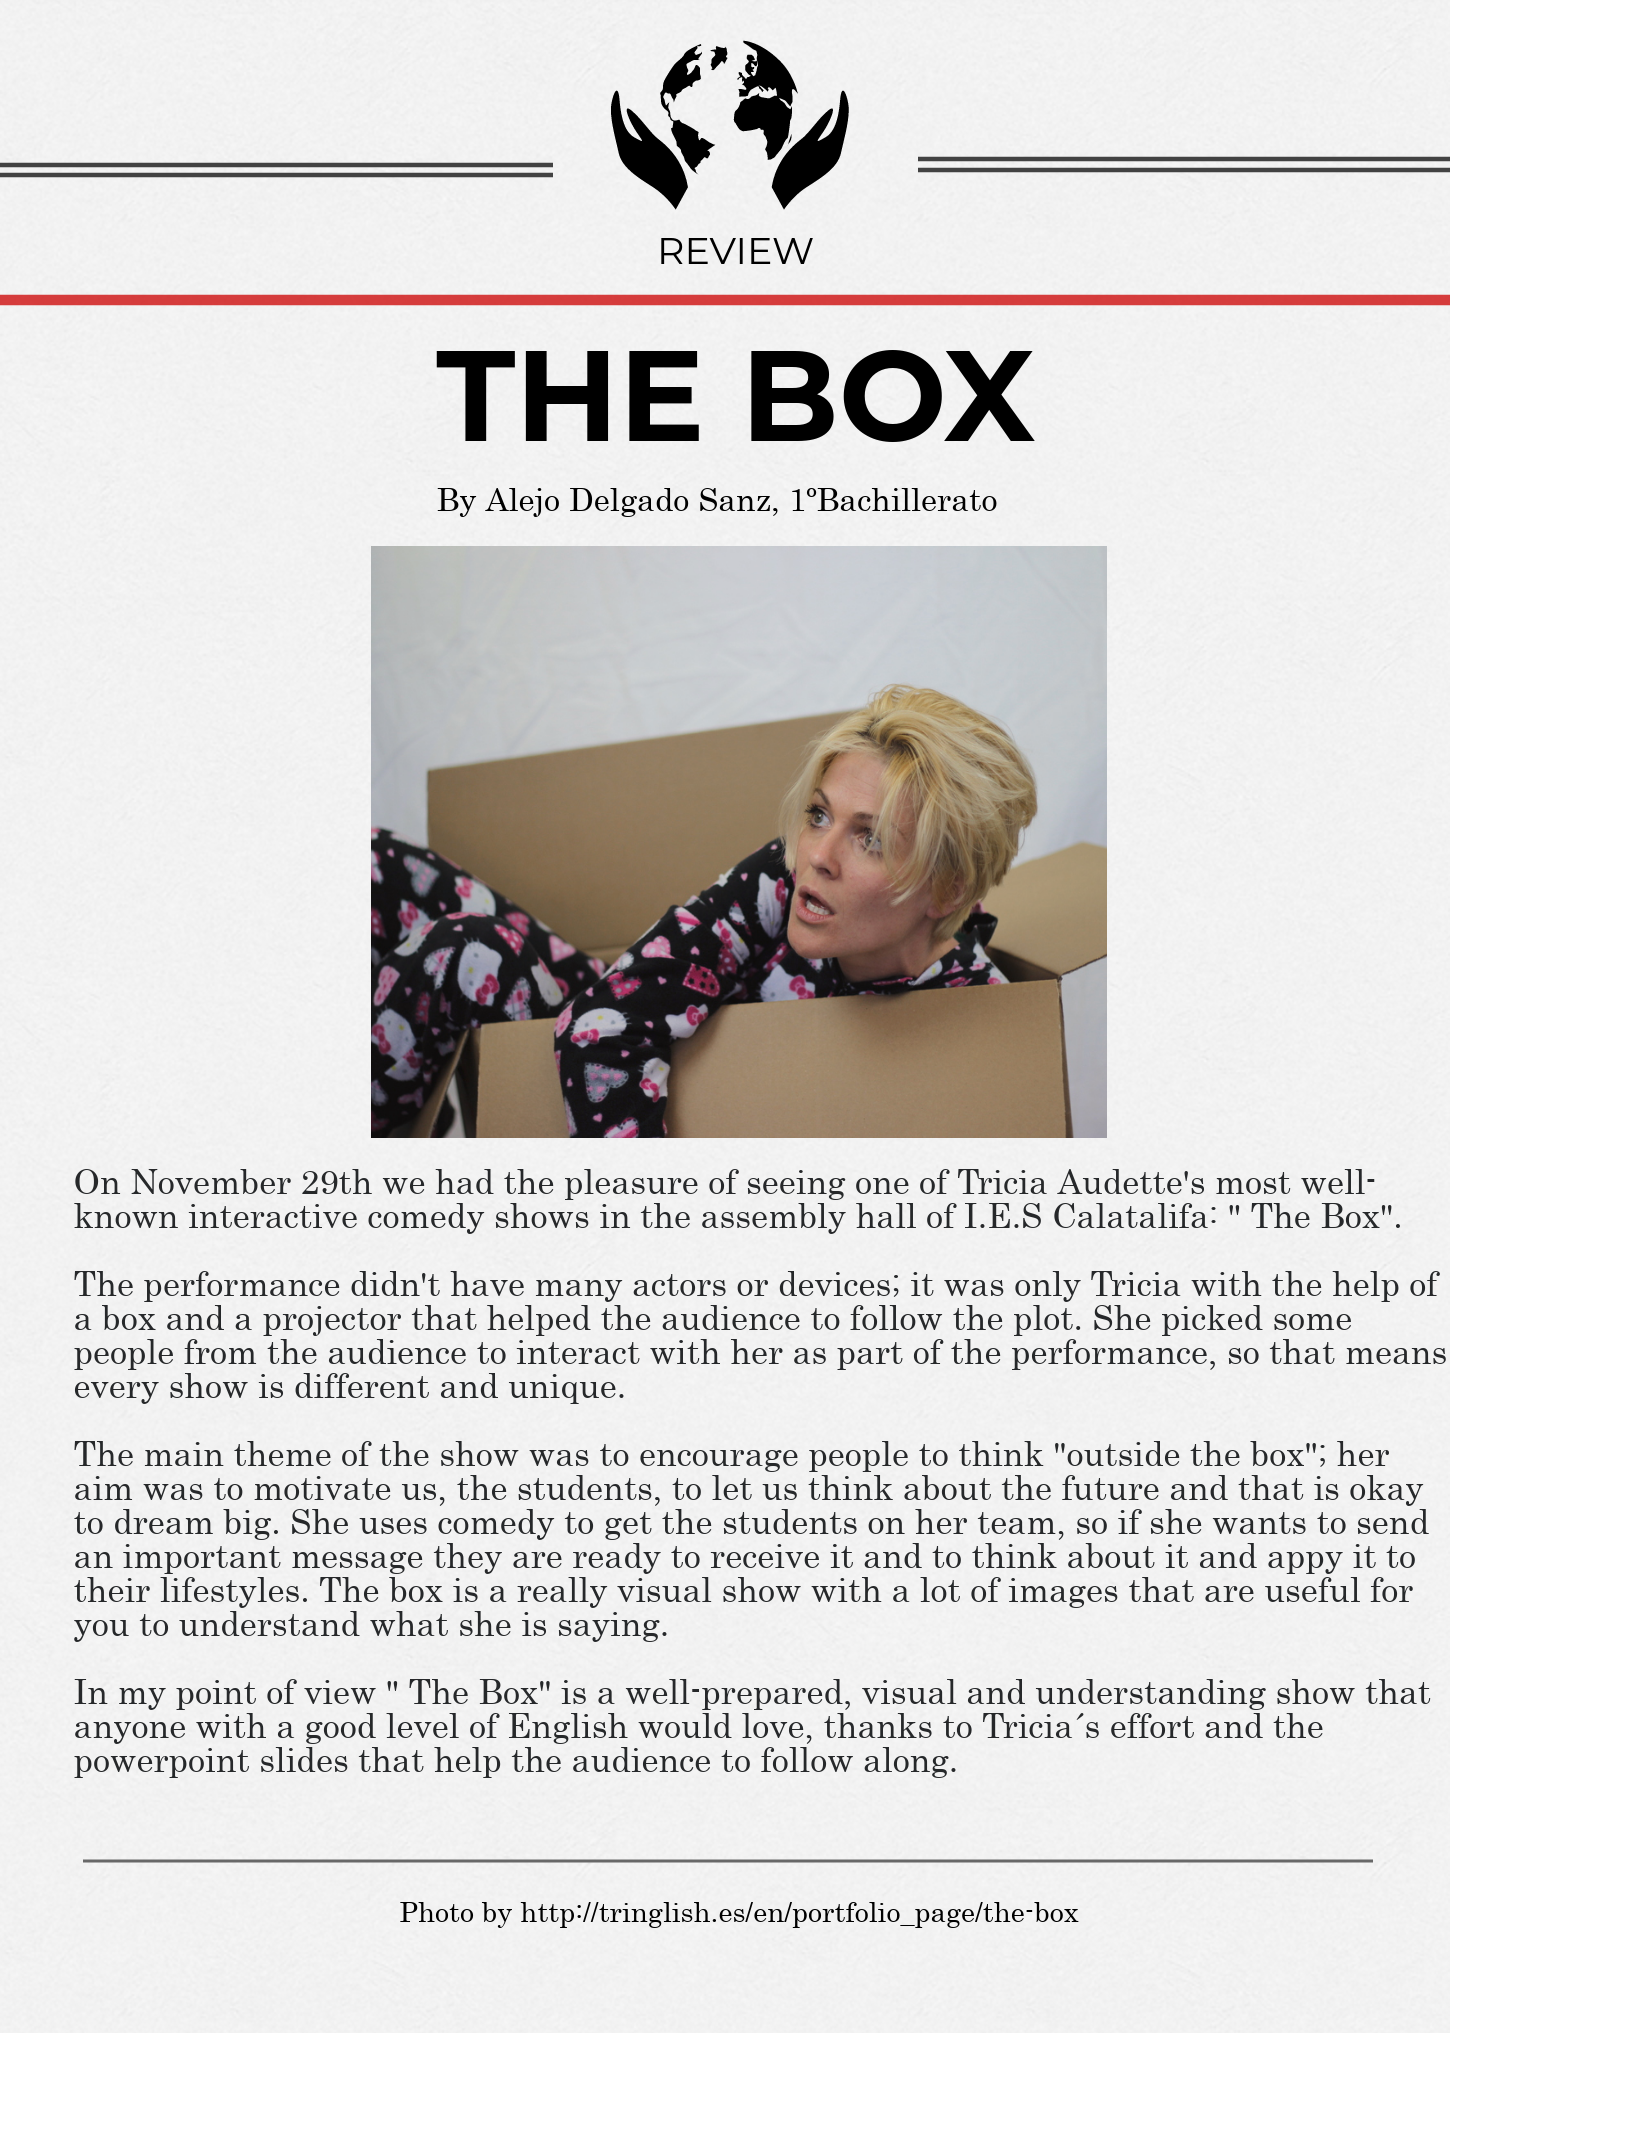 THE BOX - REVIEW